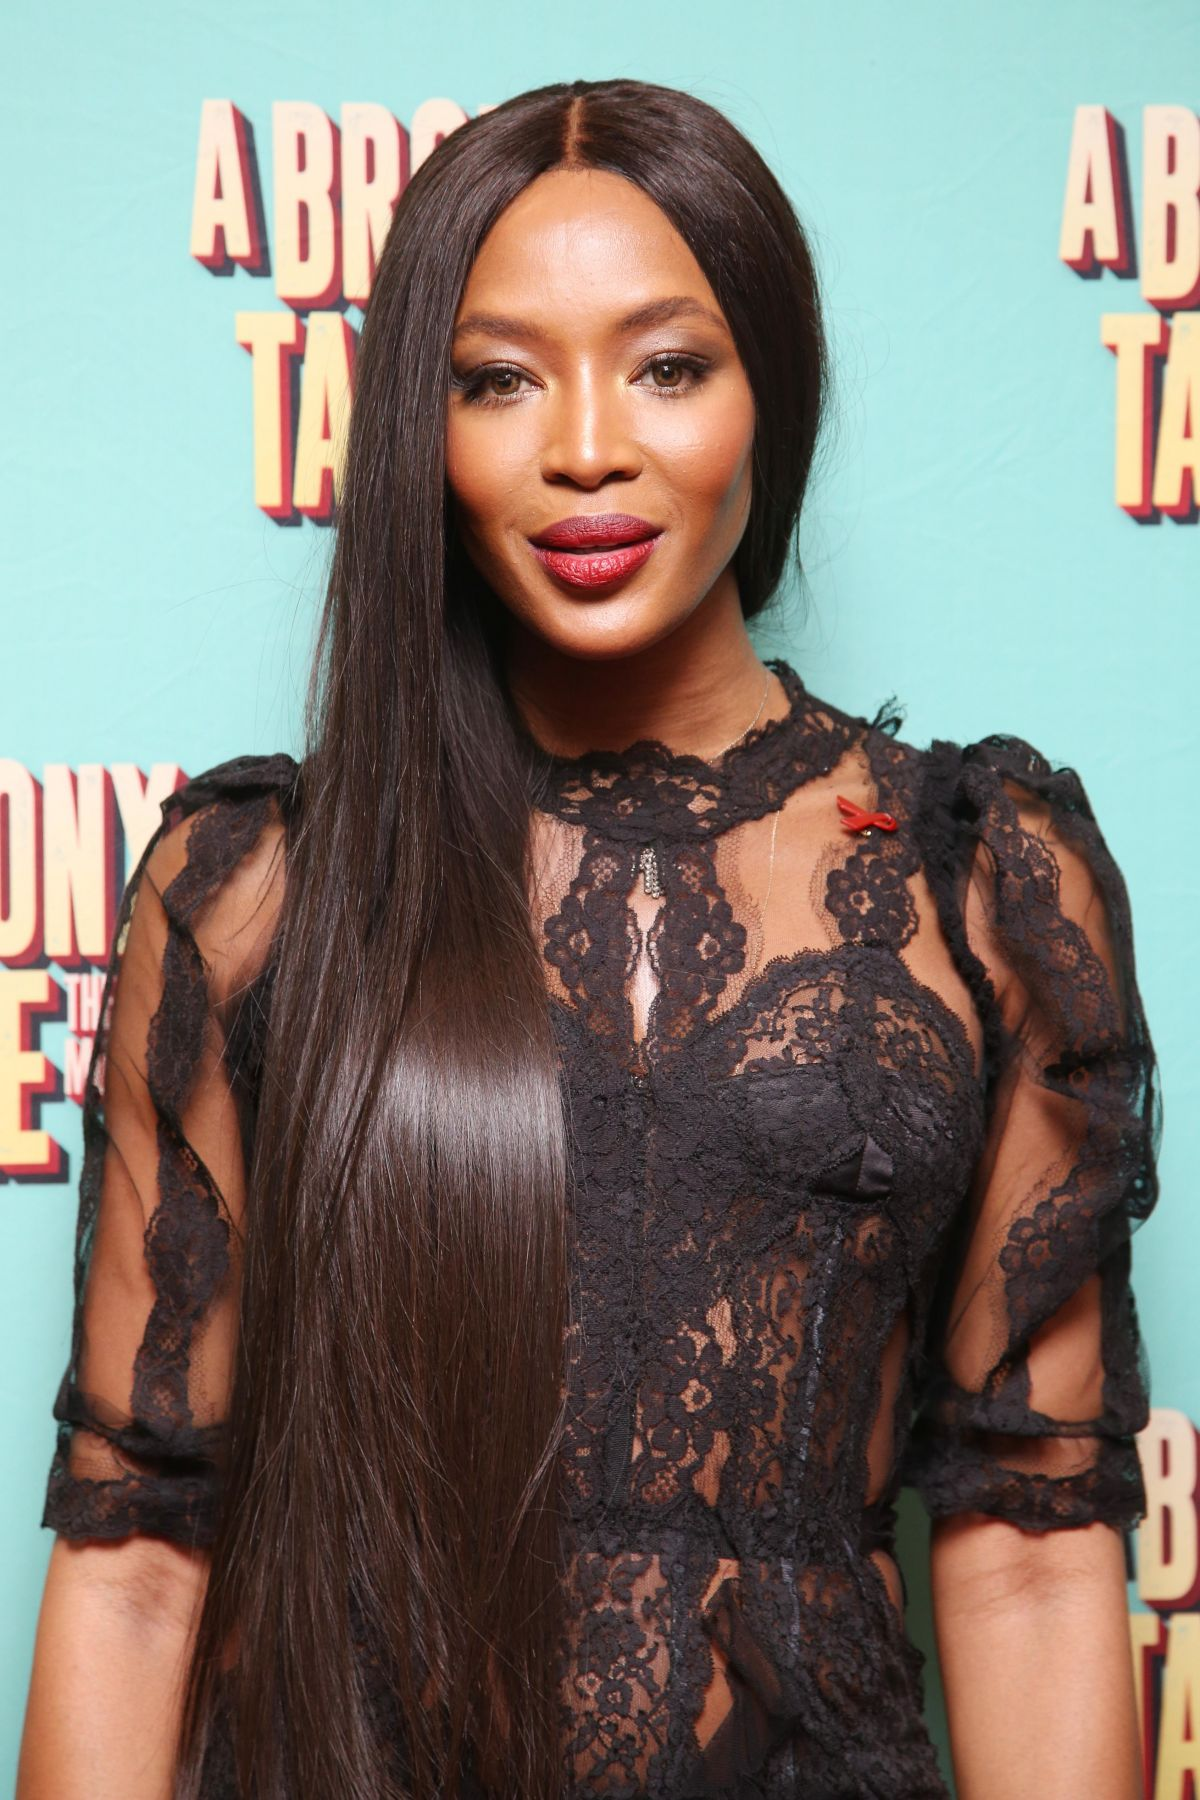 NAOMI CAMPBELL at Opening Night of ABbronx Tale at Longacre Theatre in New York 12/01/2016